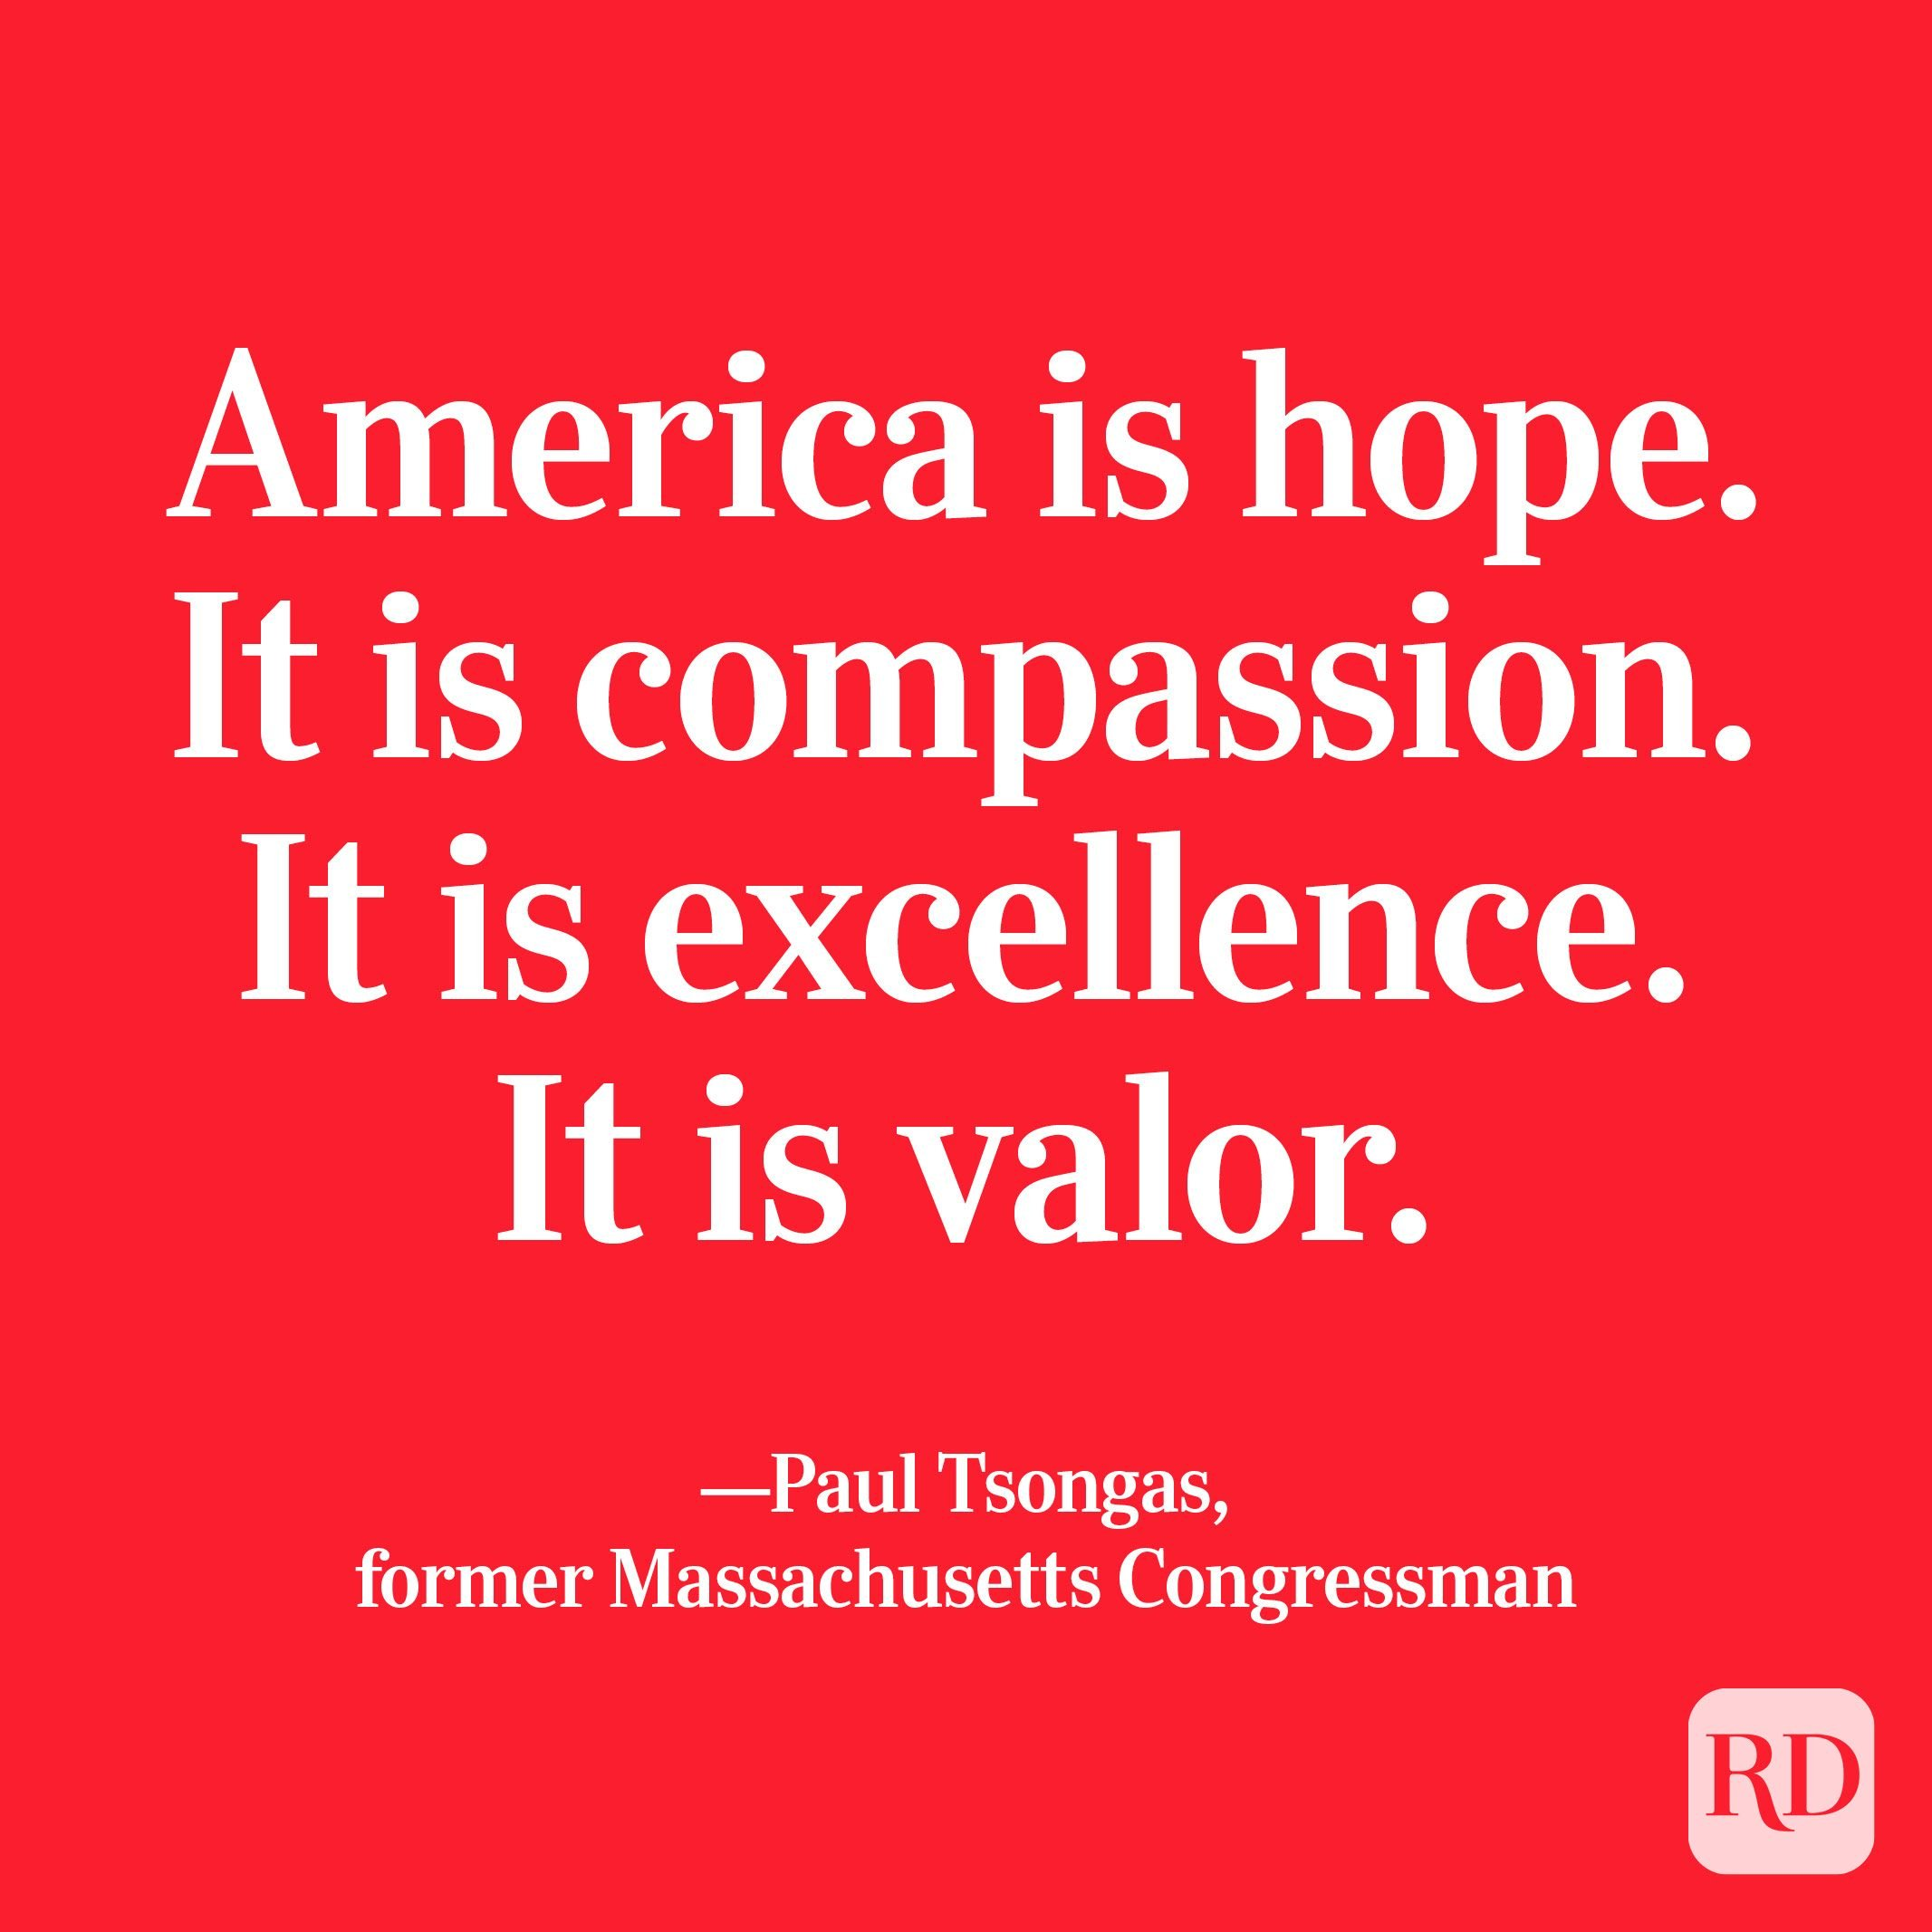 """""""America is hope. It is compassion. It is excellence. It is valor."""" —Paul Tsongas, former Massachusetts Congressman"""